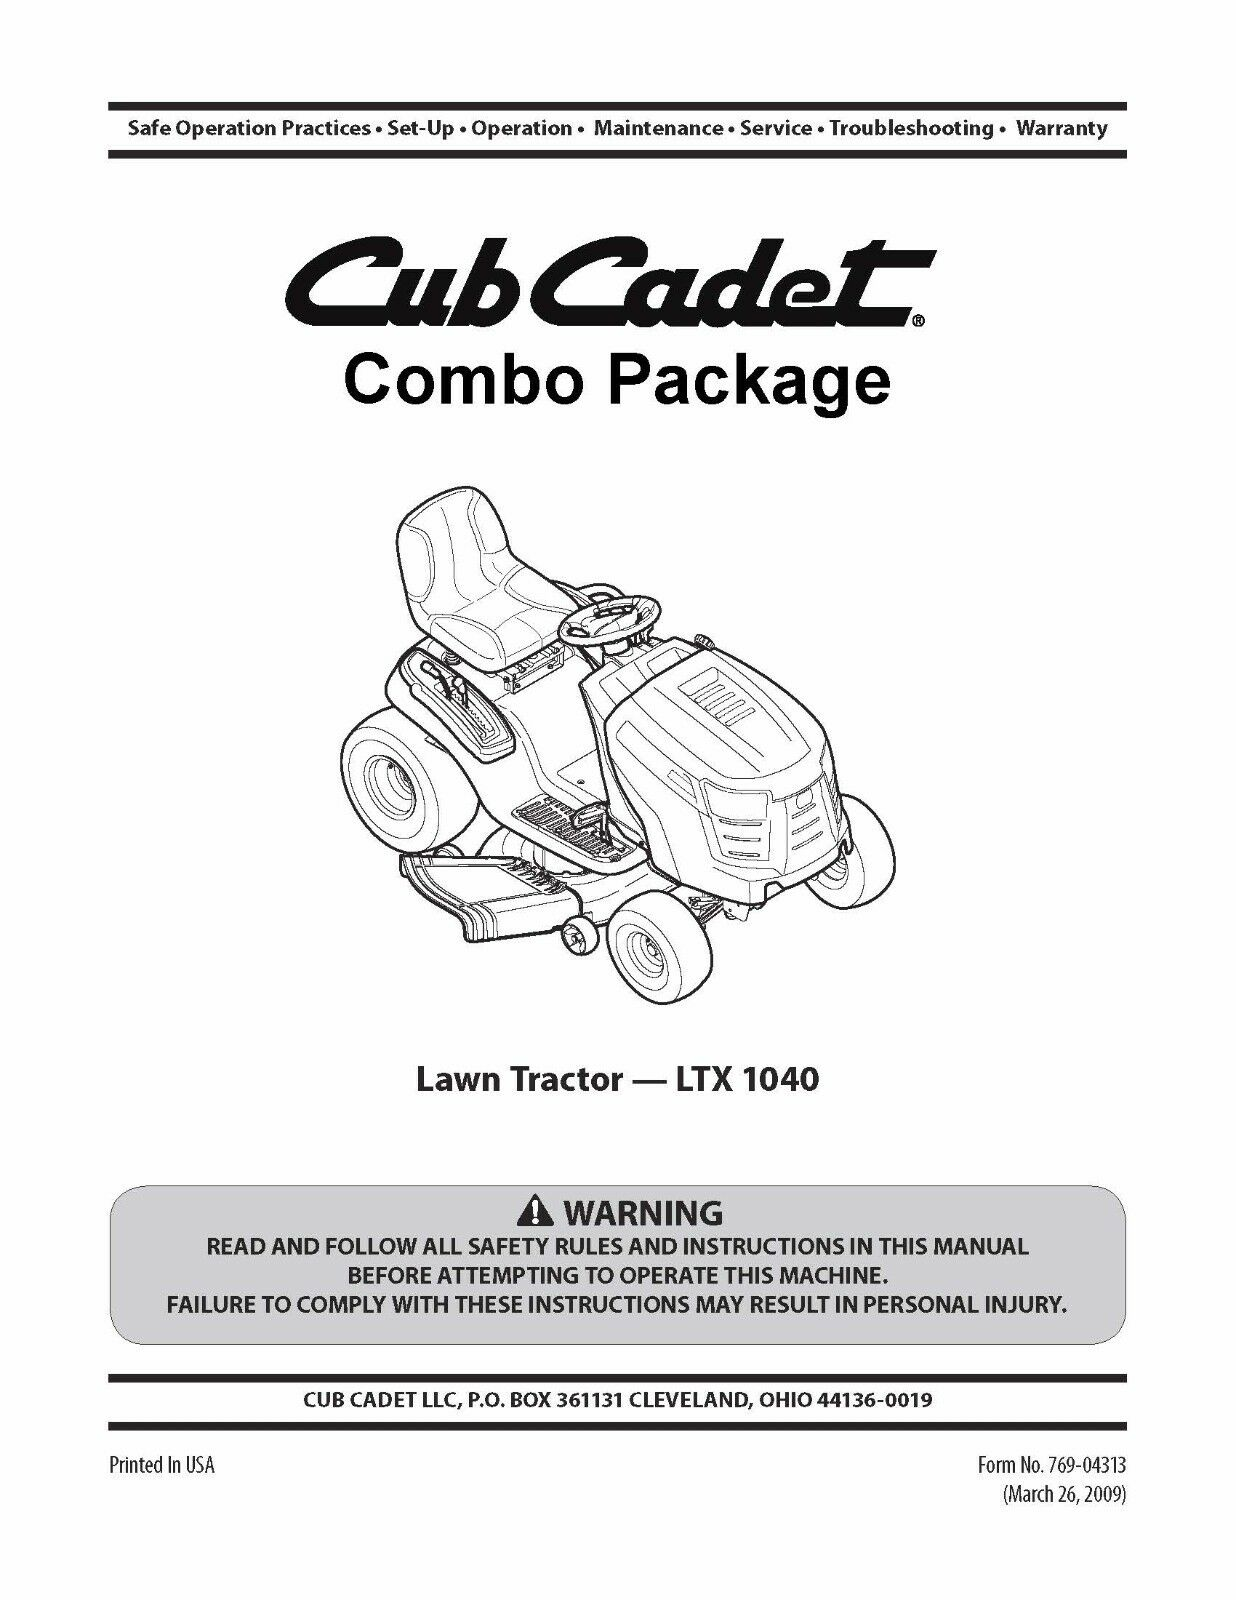 cub cadet model no ltx 1040 lawn tractor manuals combo package rh picclick com cub cadet model ltx 1040 owners manual 2009 cub cadet ltx 1040 owners manual